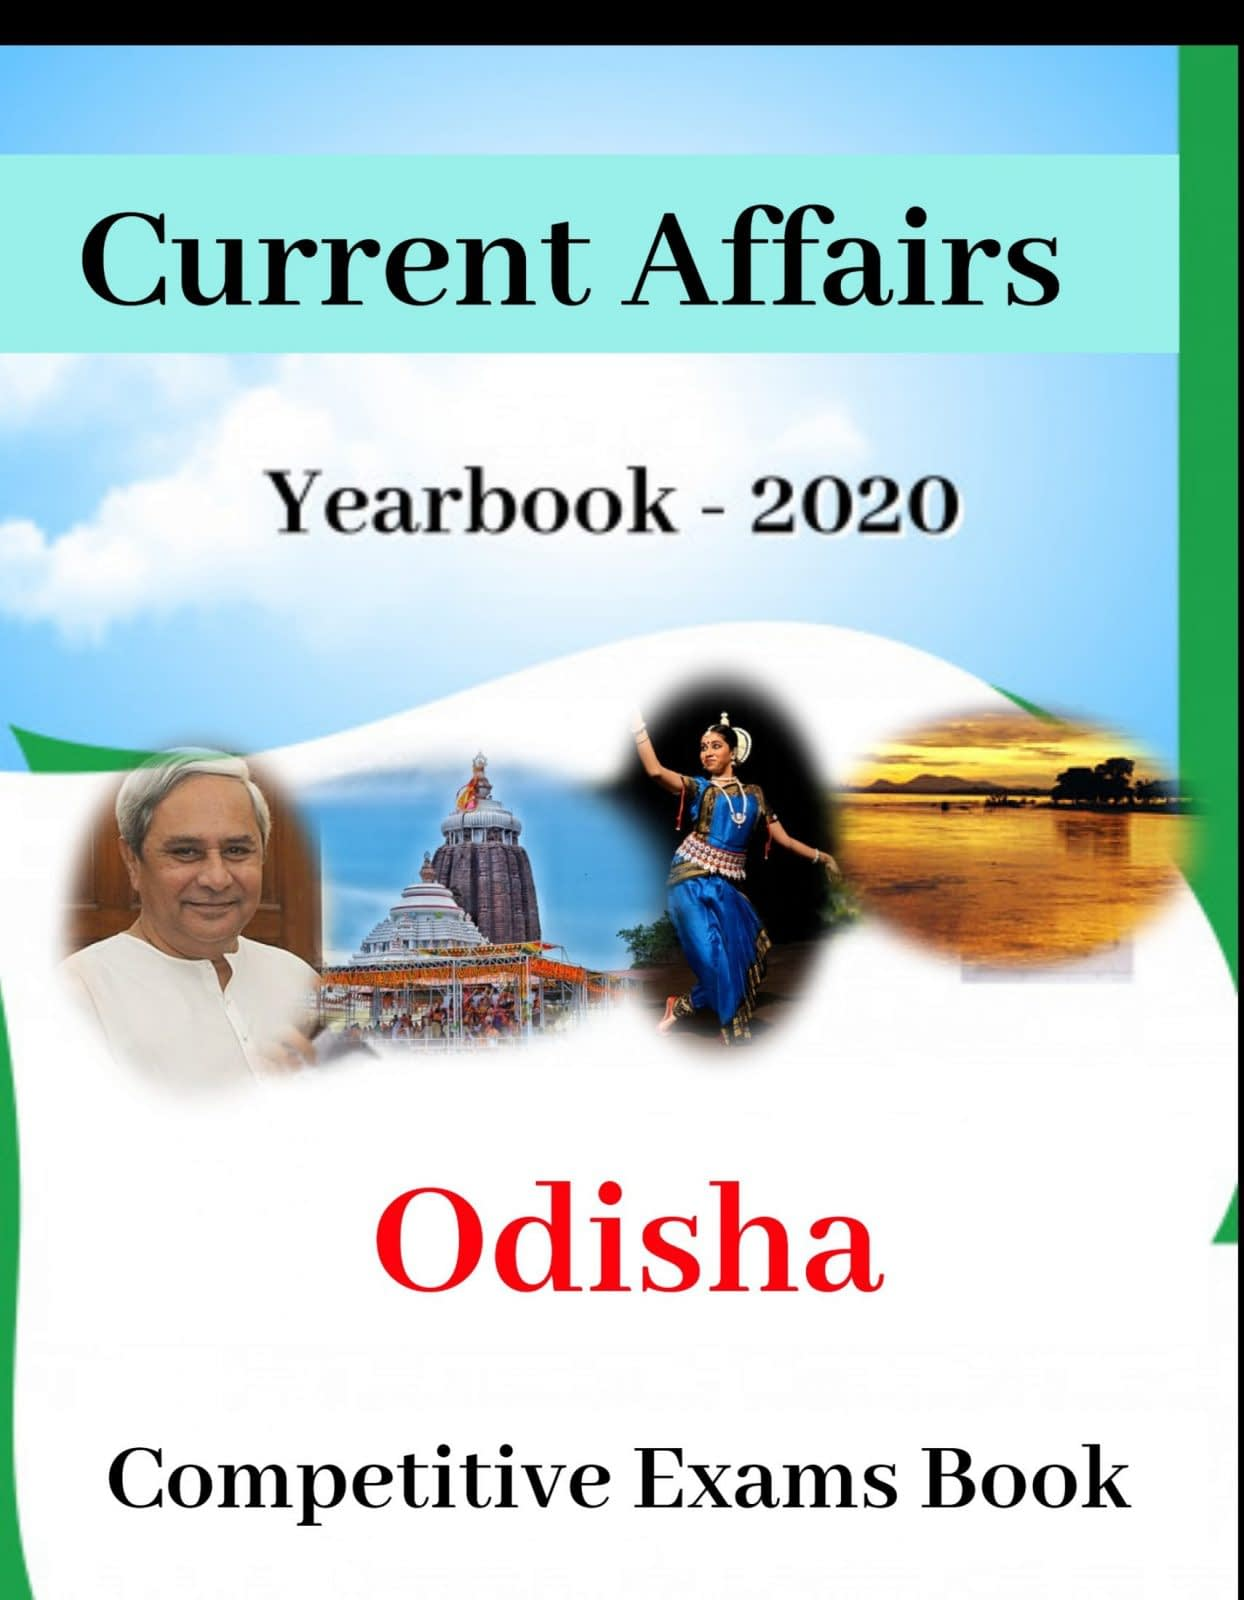 Odisha Current Affairs Yearbook 2020